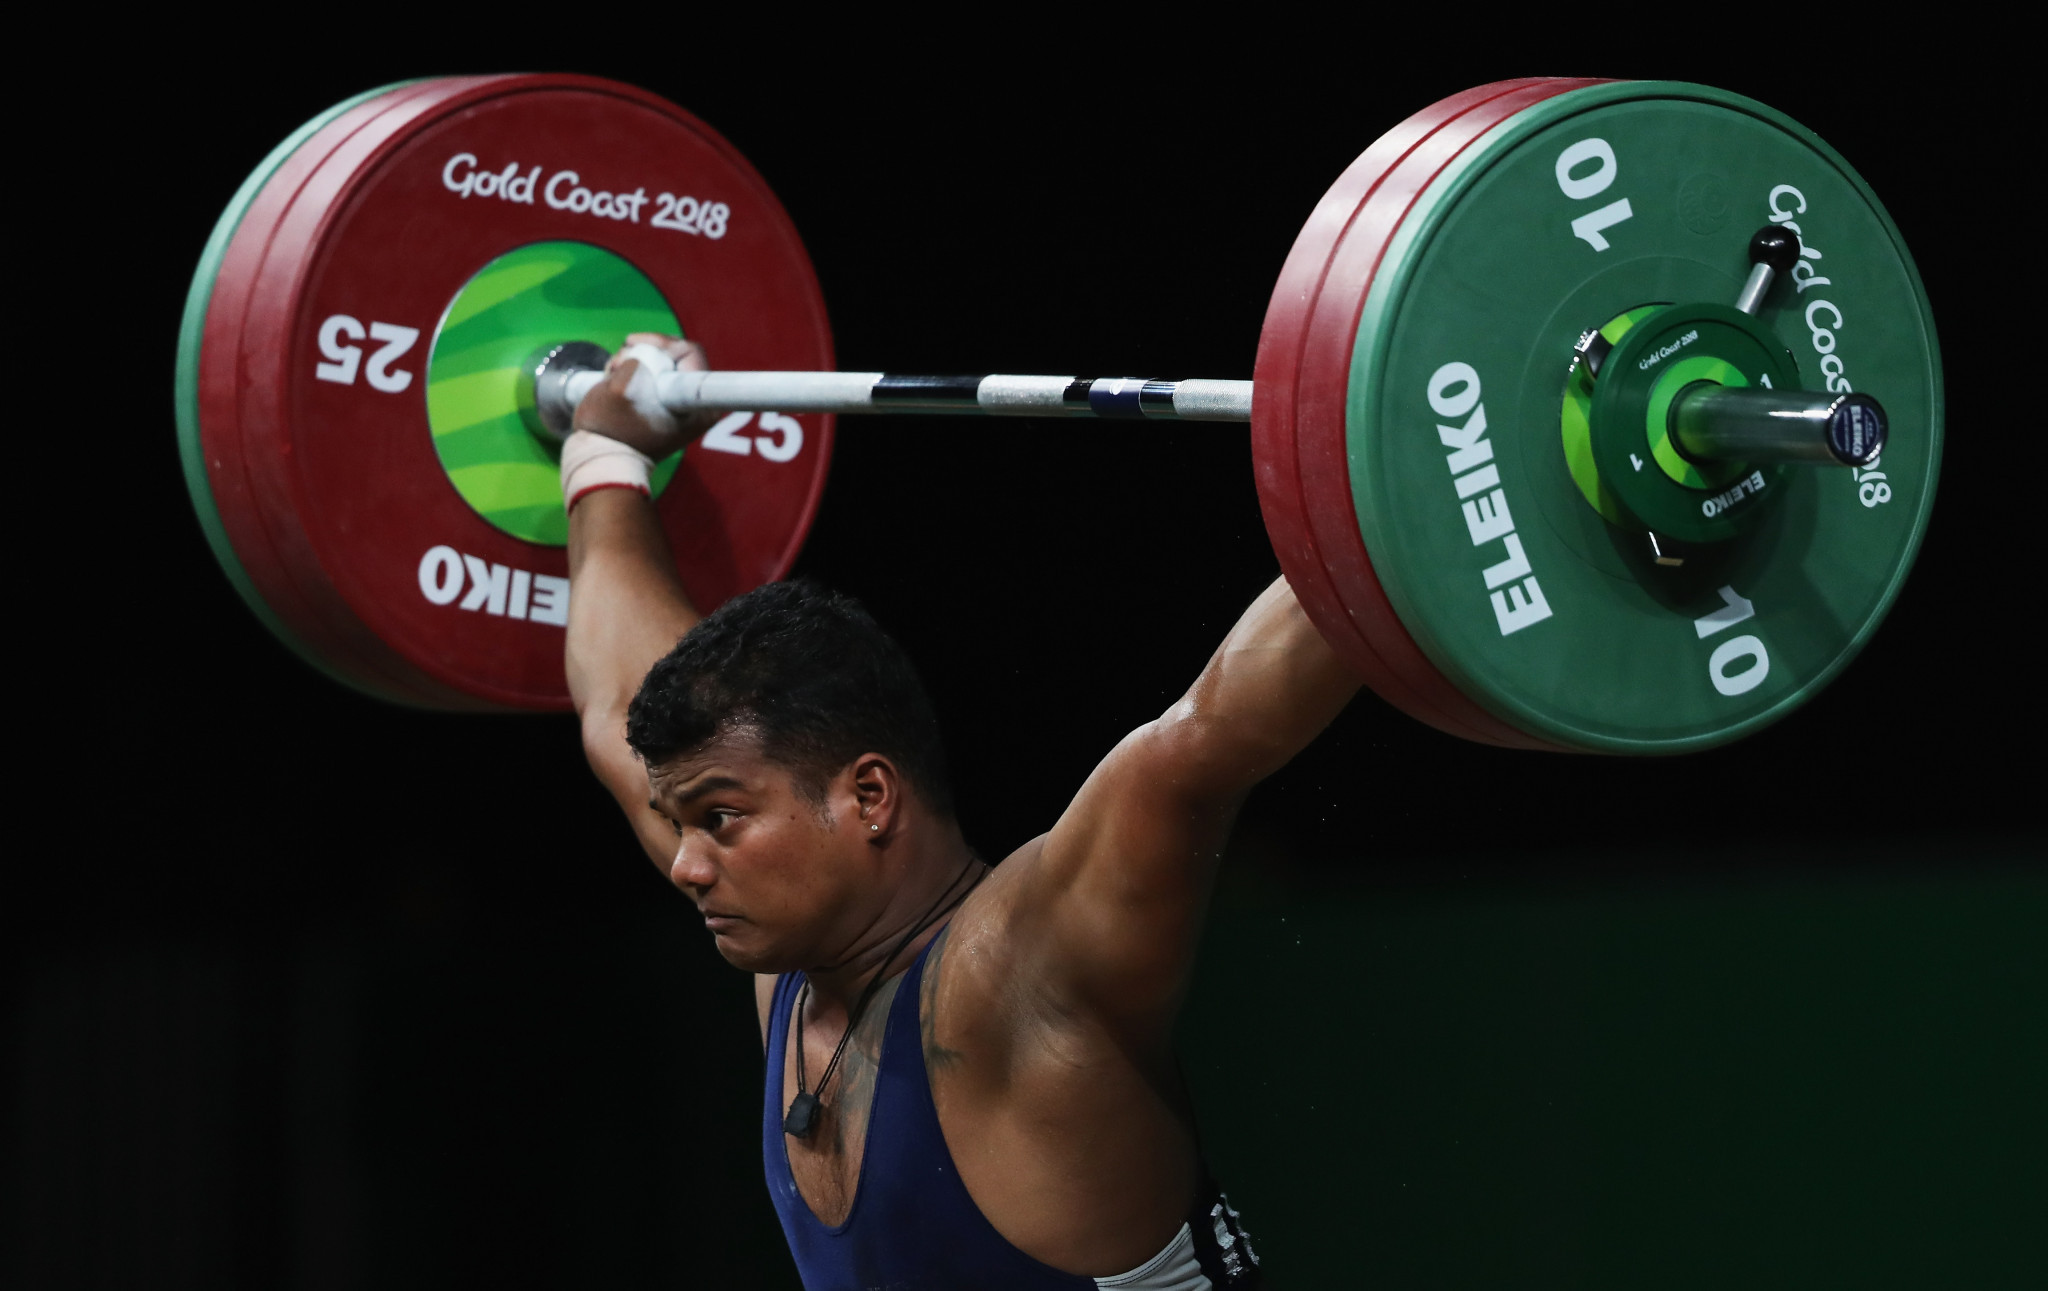 Venkat Rahul Ragala increased India's weightlifting gold medal tally to four with success in the men's 85kg event ©Getty Images